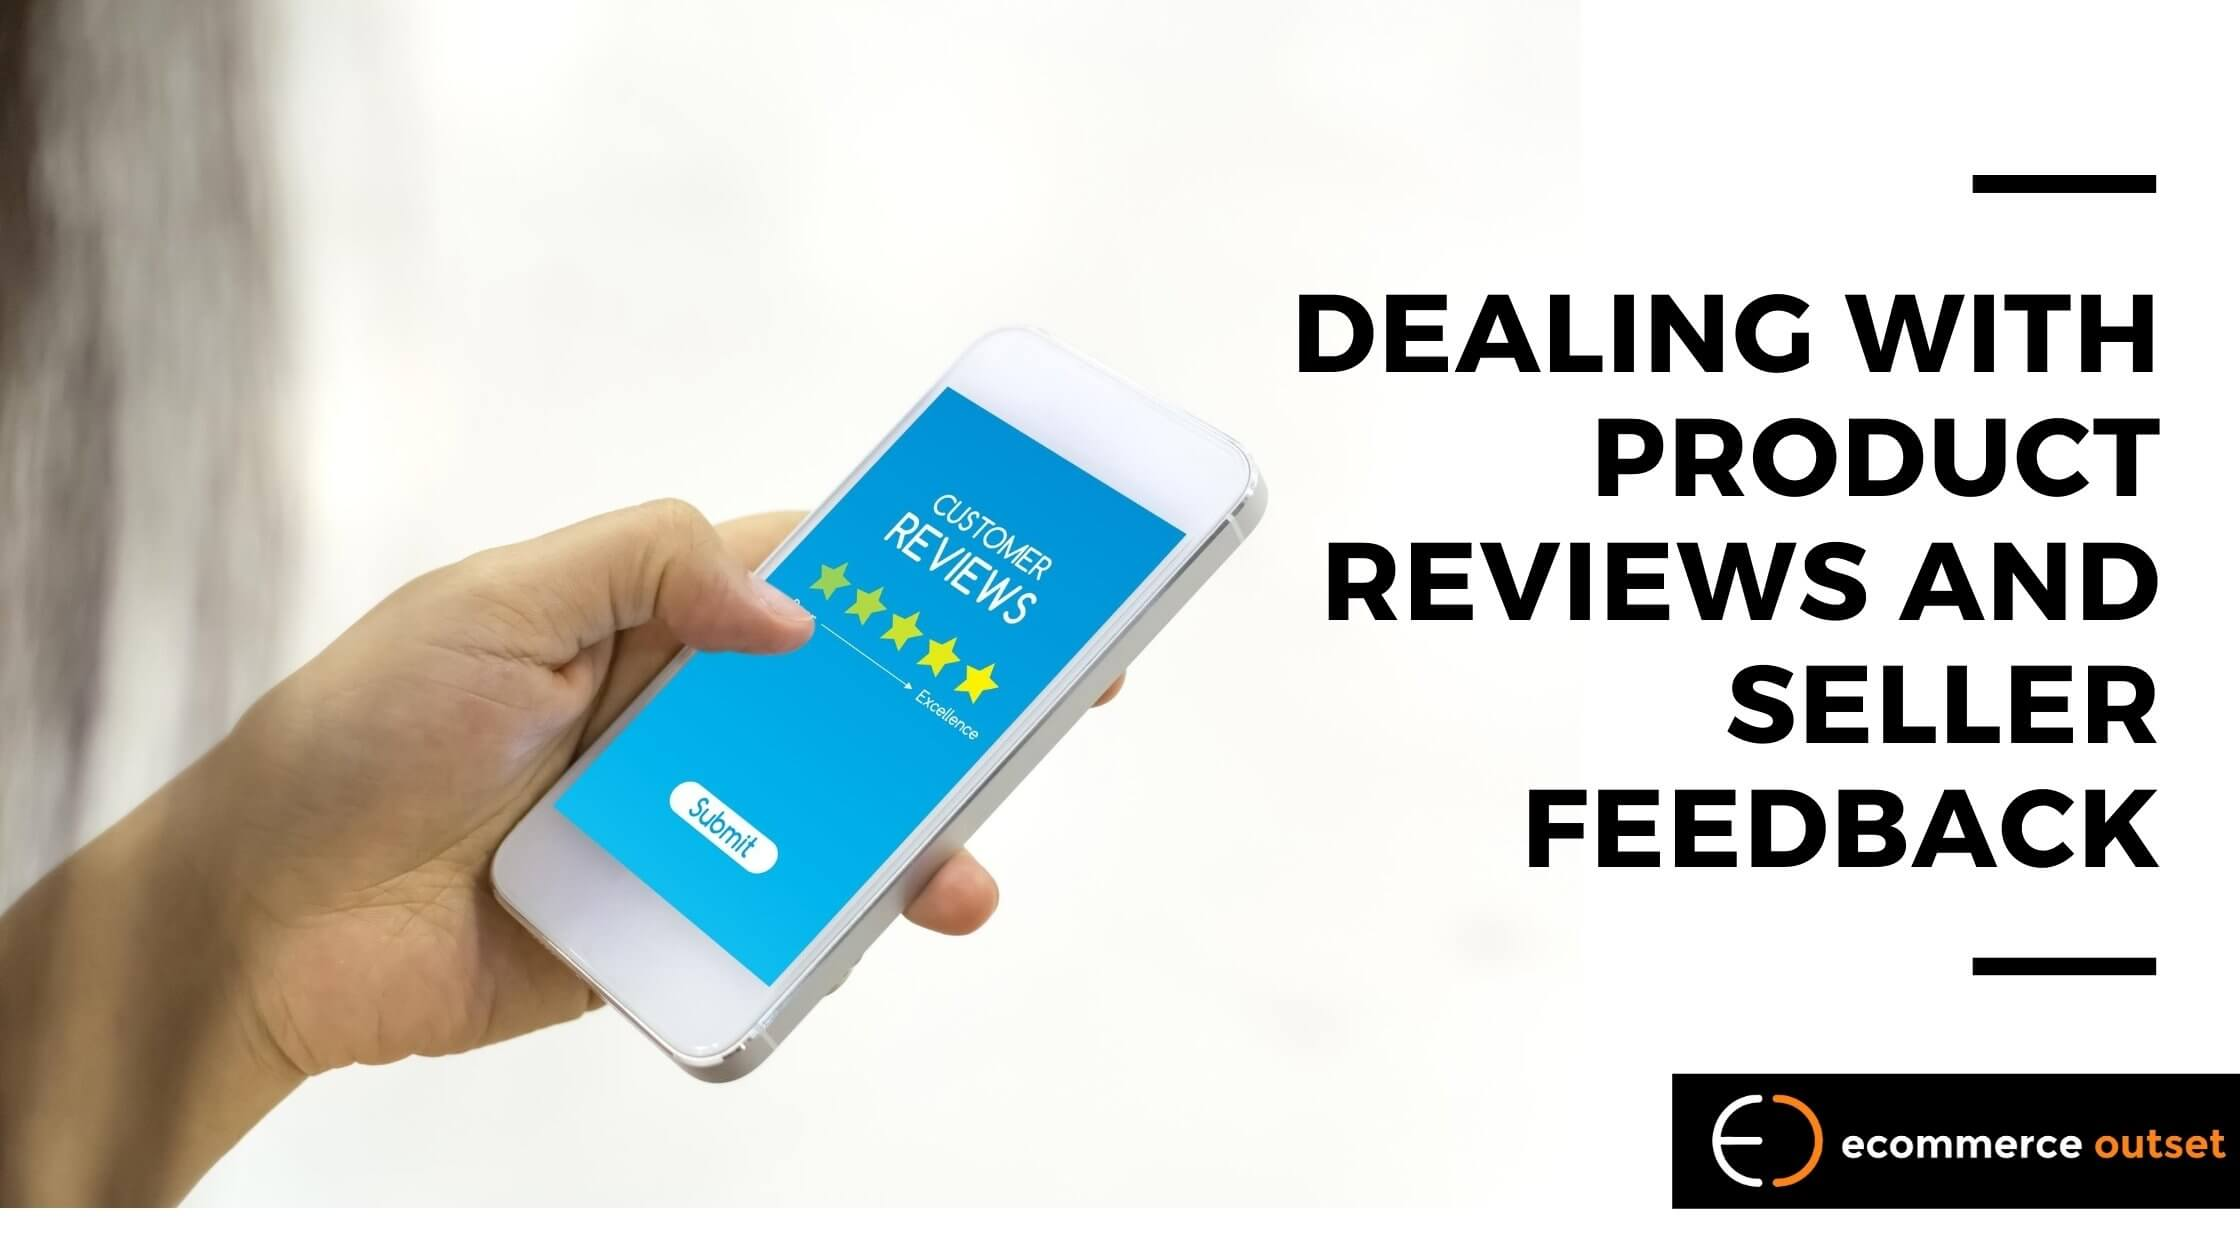 Dealing with Product Reviews and Seller Feedback - The Right Way